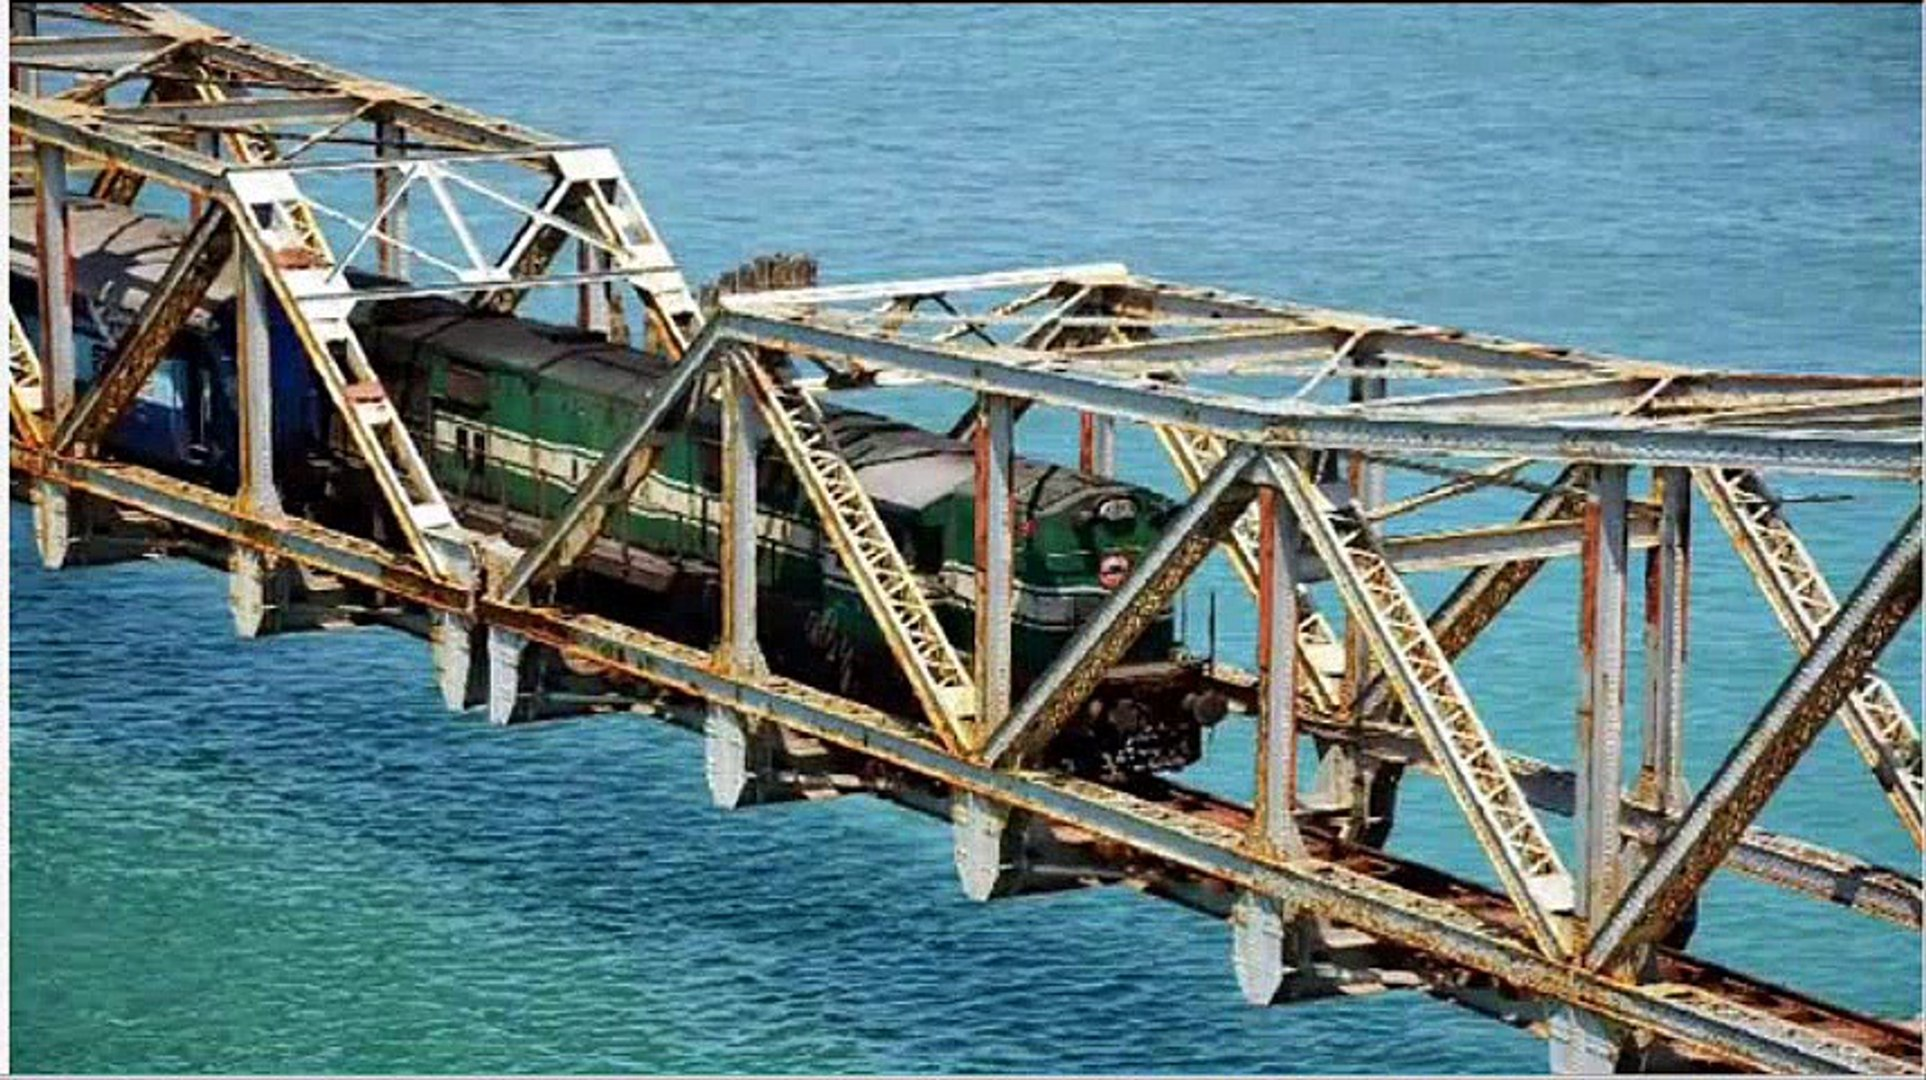 Pamban Bridge - A Railway Bridge,Rameswaram, Tamil Nadu, India.